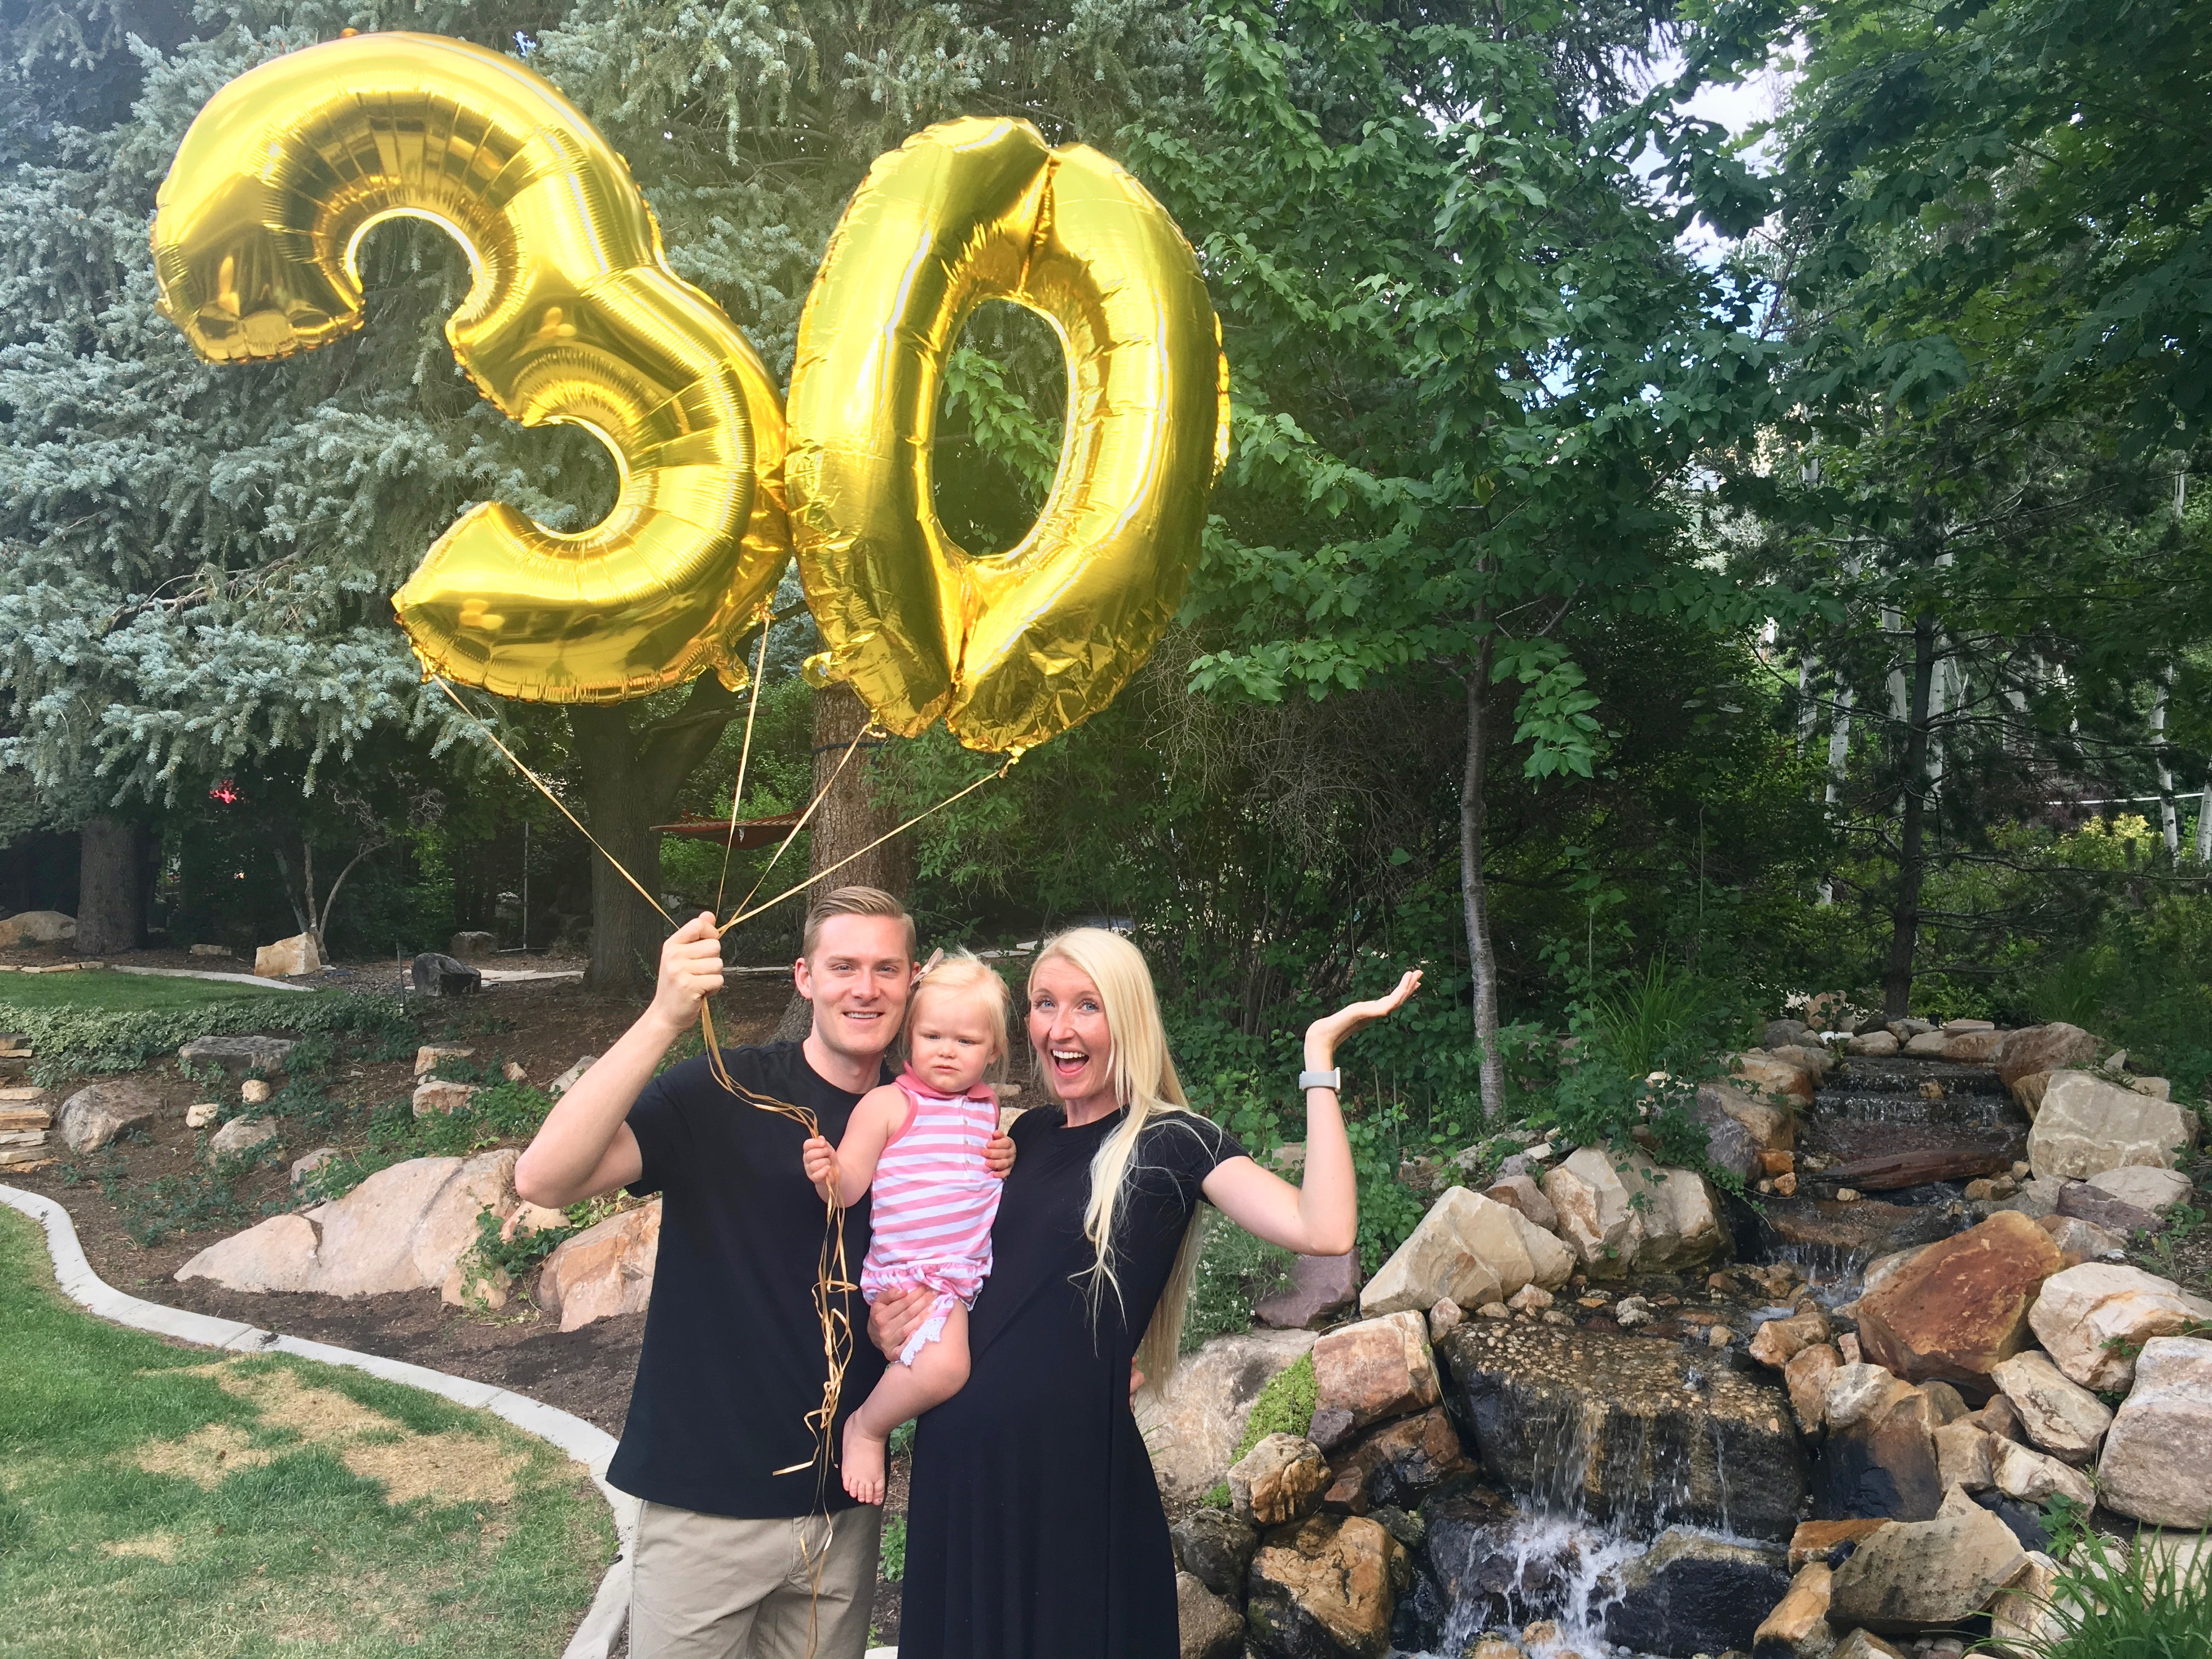 Chase's 30th birthday!